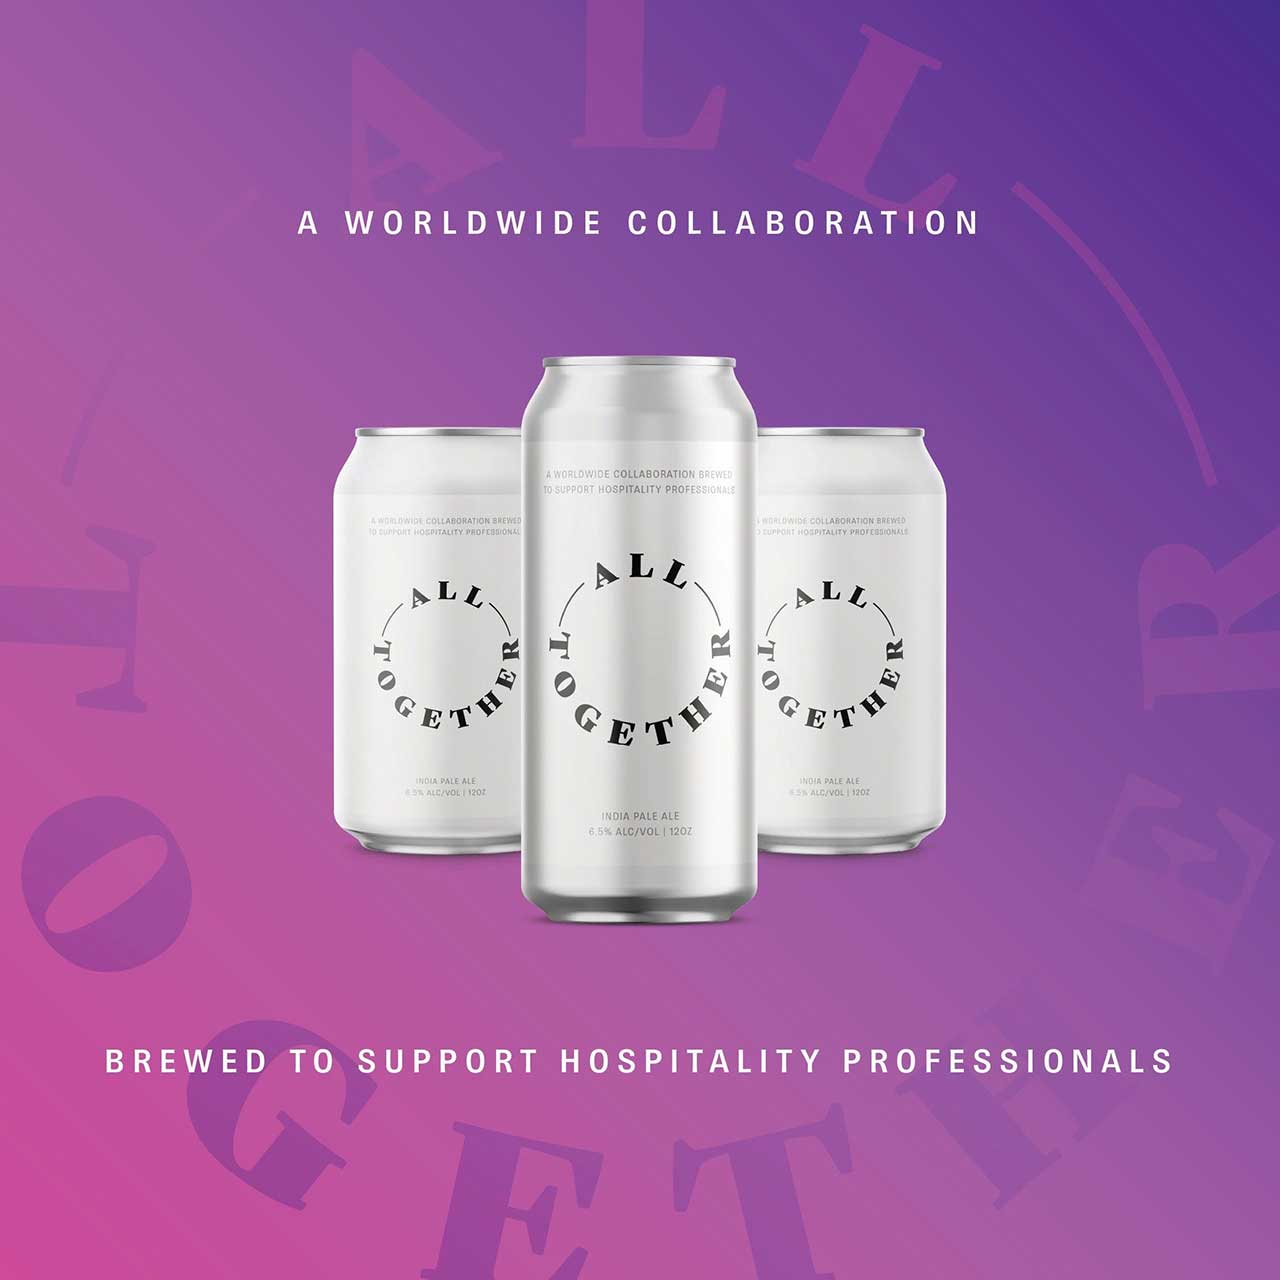 all-together-craft-beer-initiative